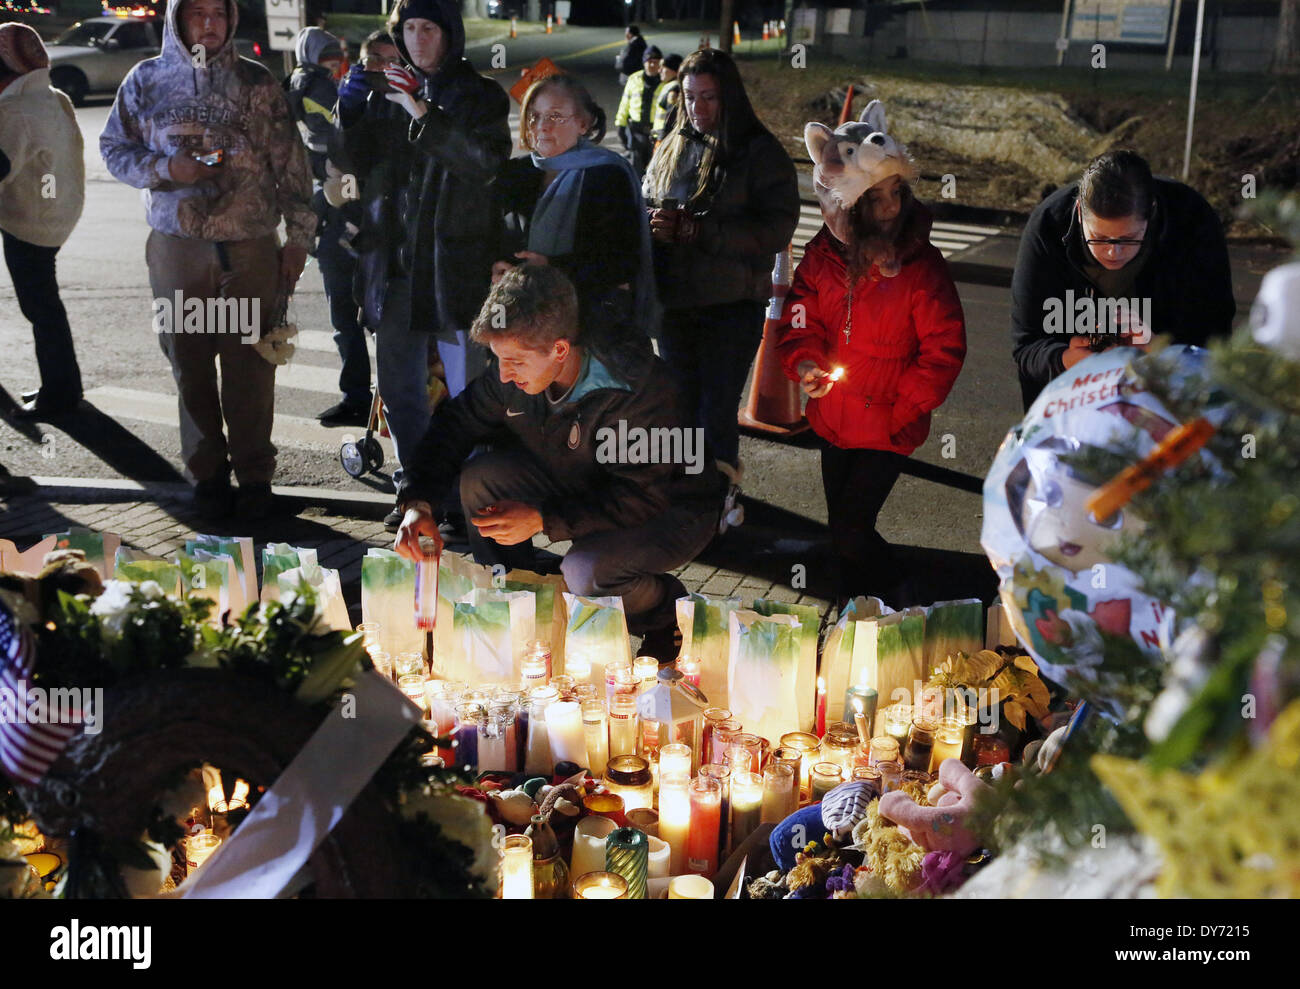 Mourners attend a candlelight vigil at a sidewalk memorial for the